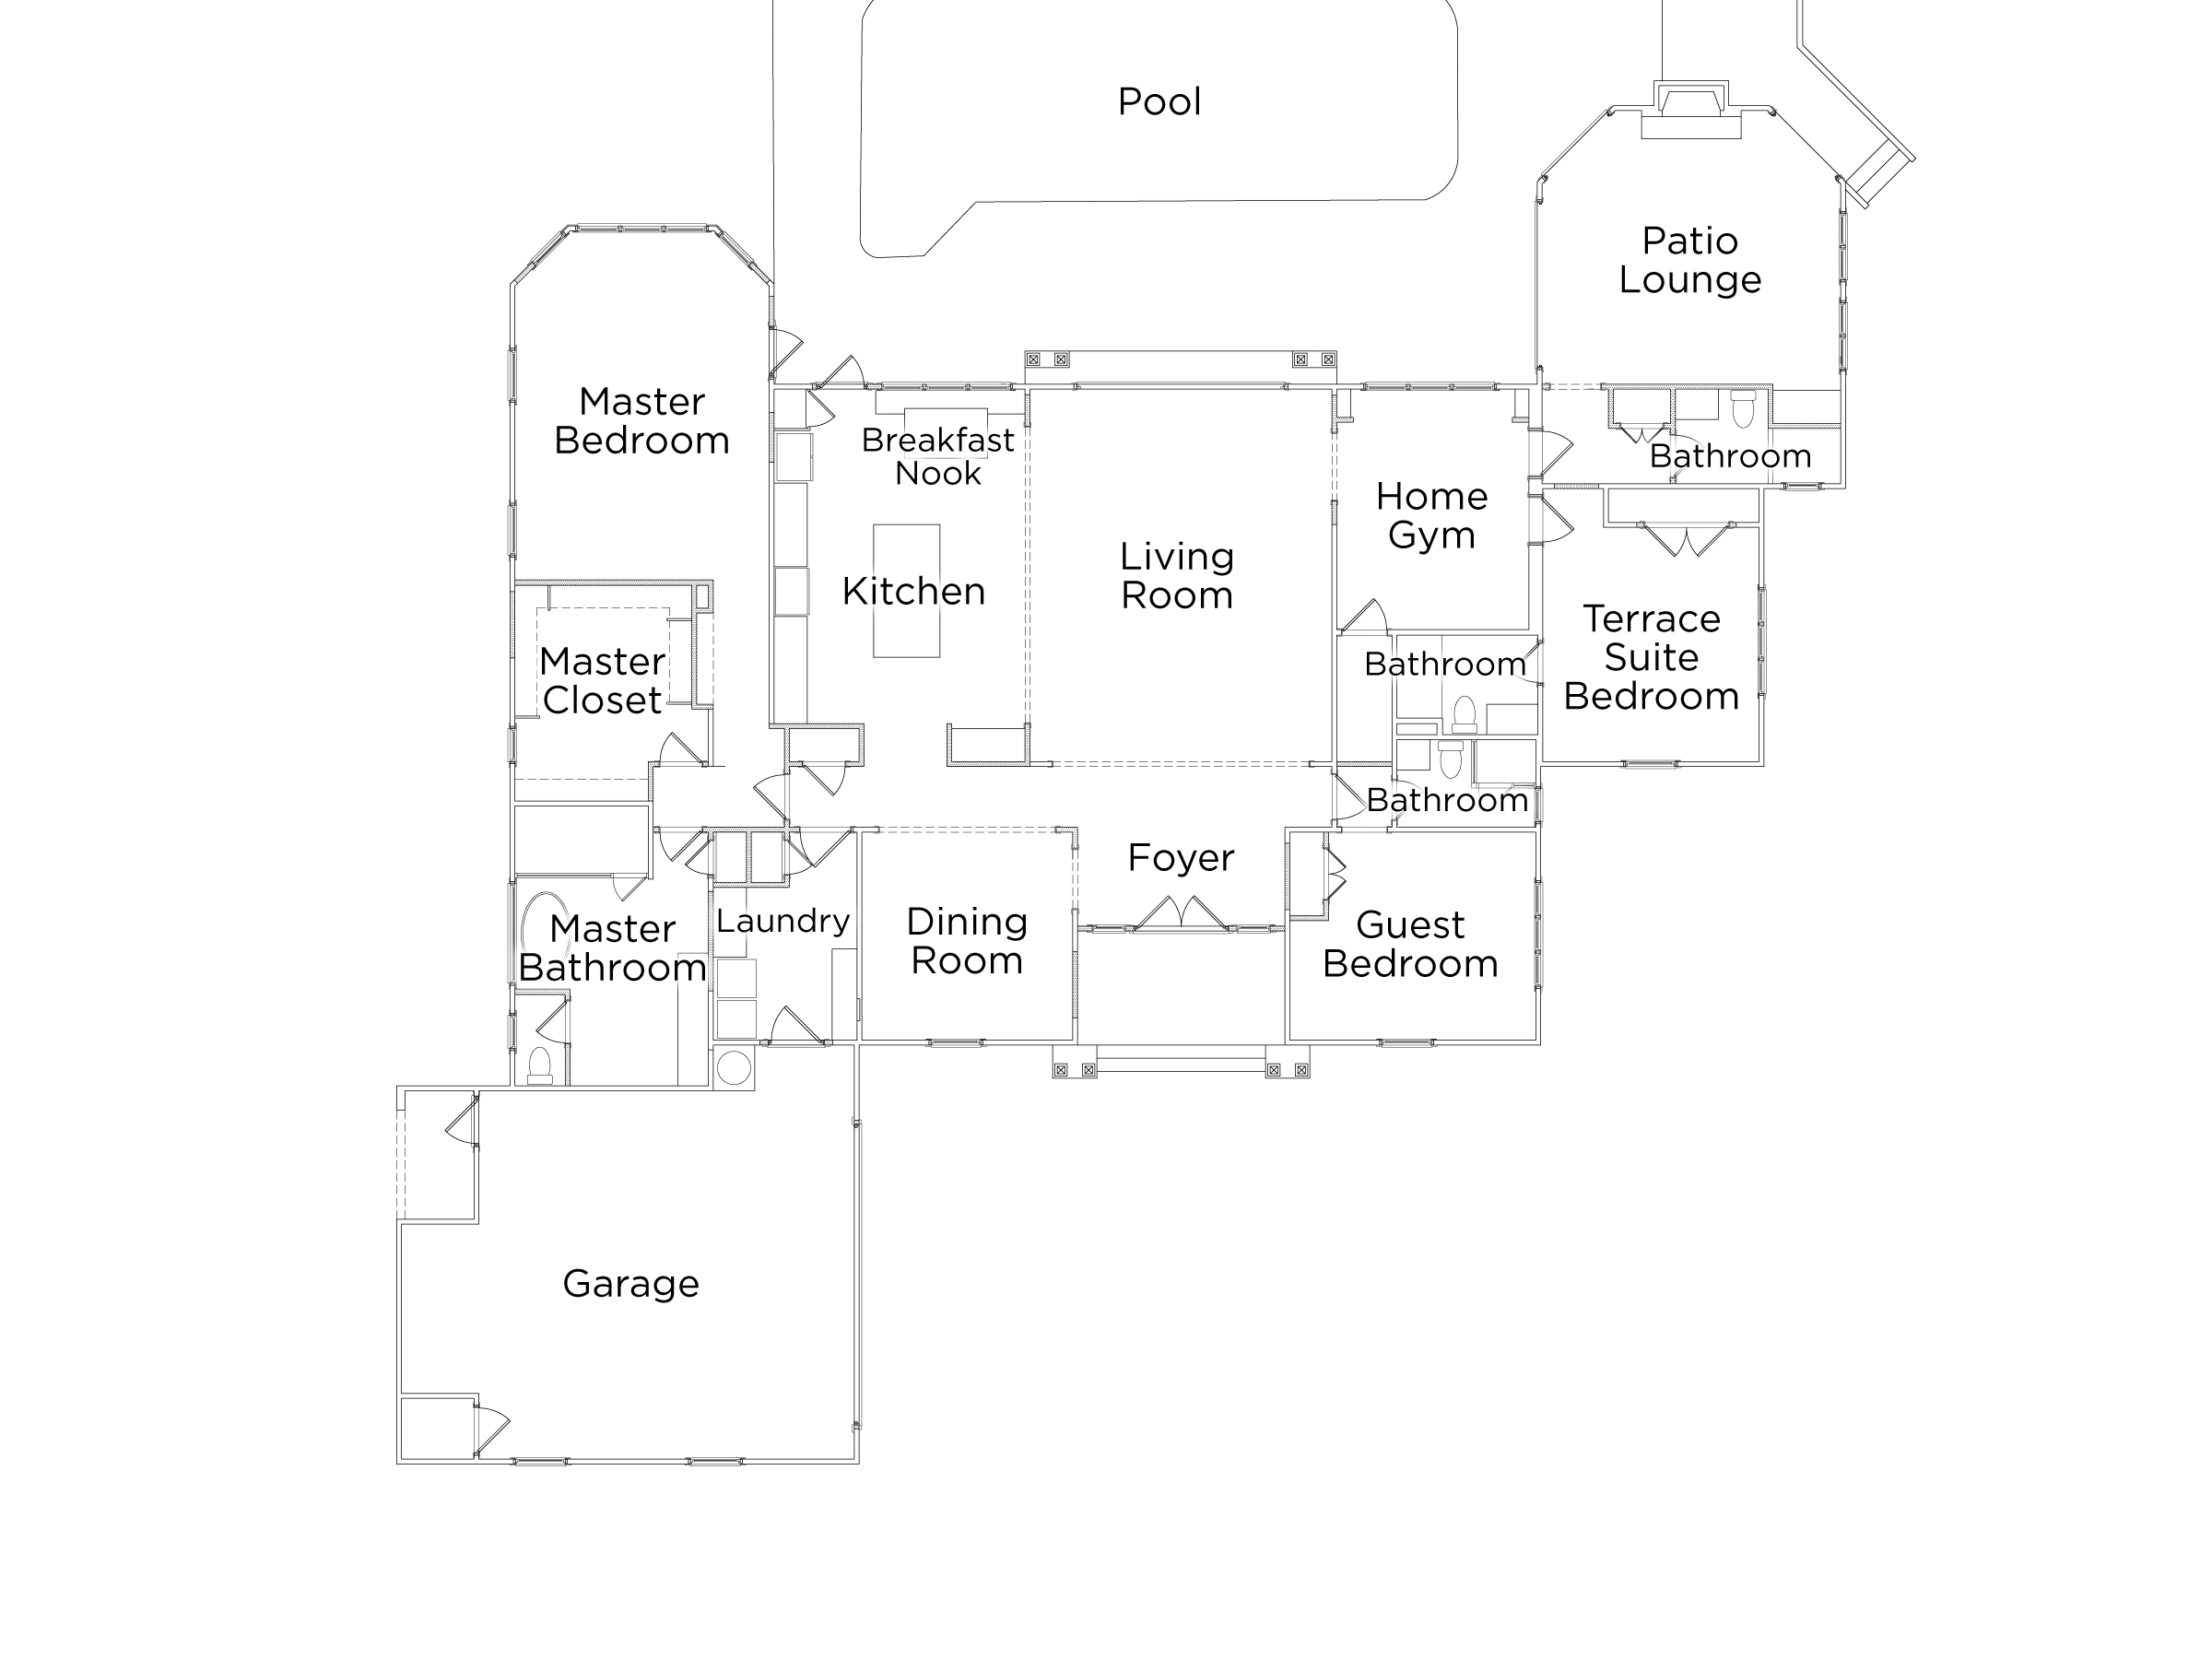 Show virtual tour canal kitchen living room pool - Hgtv Dh17 Floor Plan Photo Gallery_h